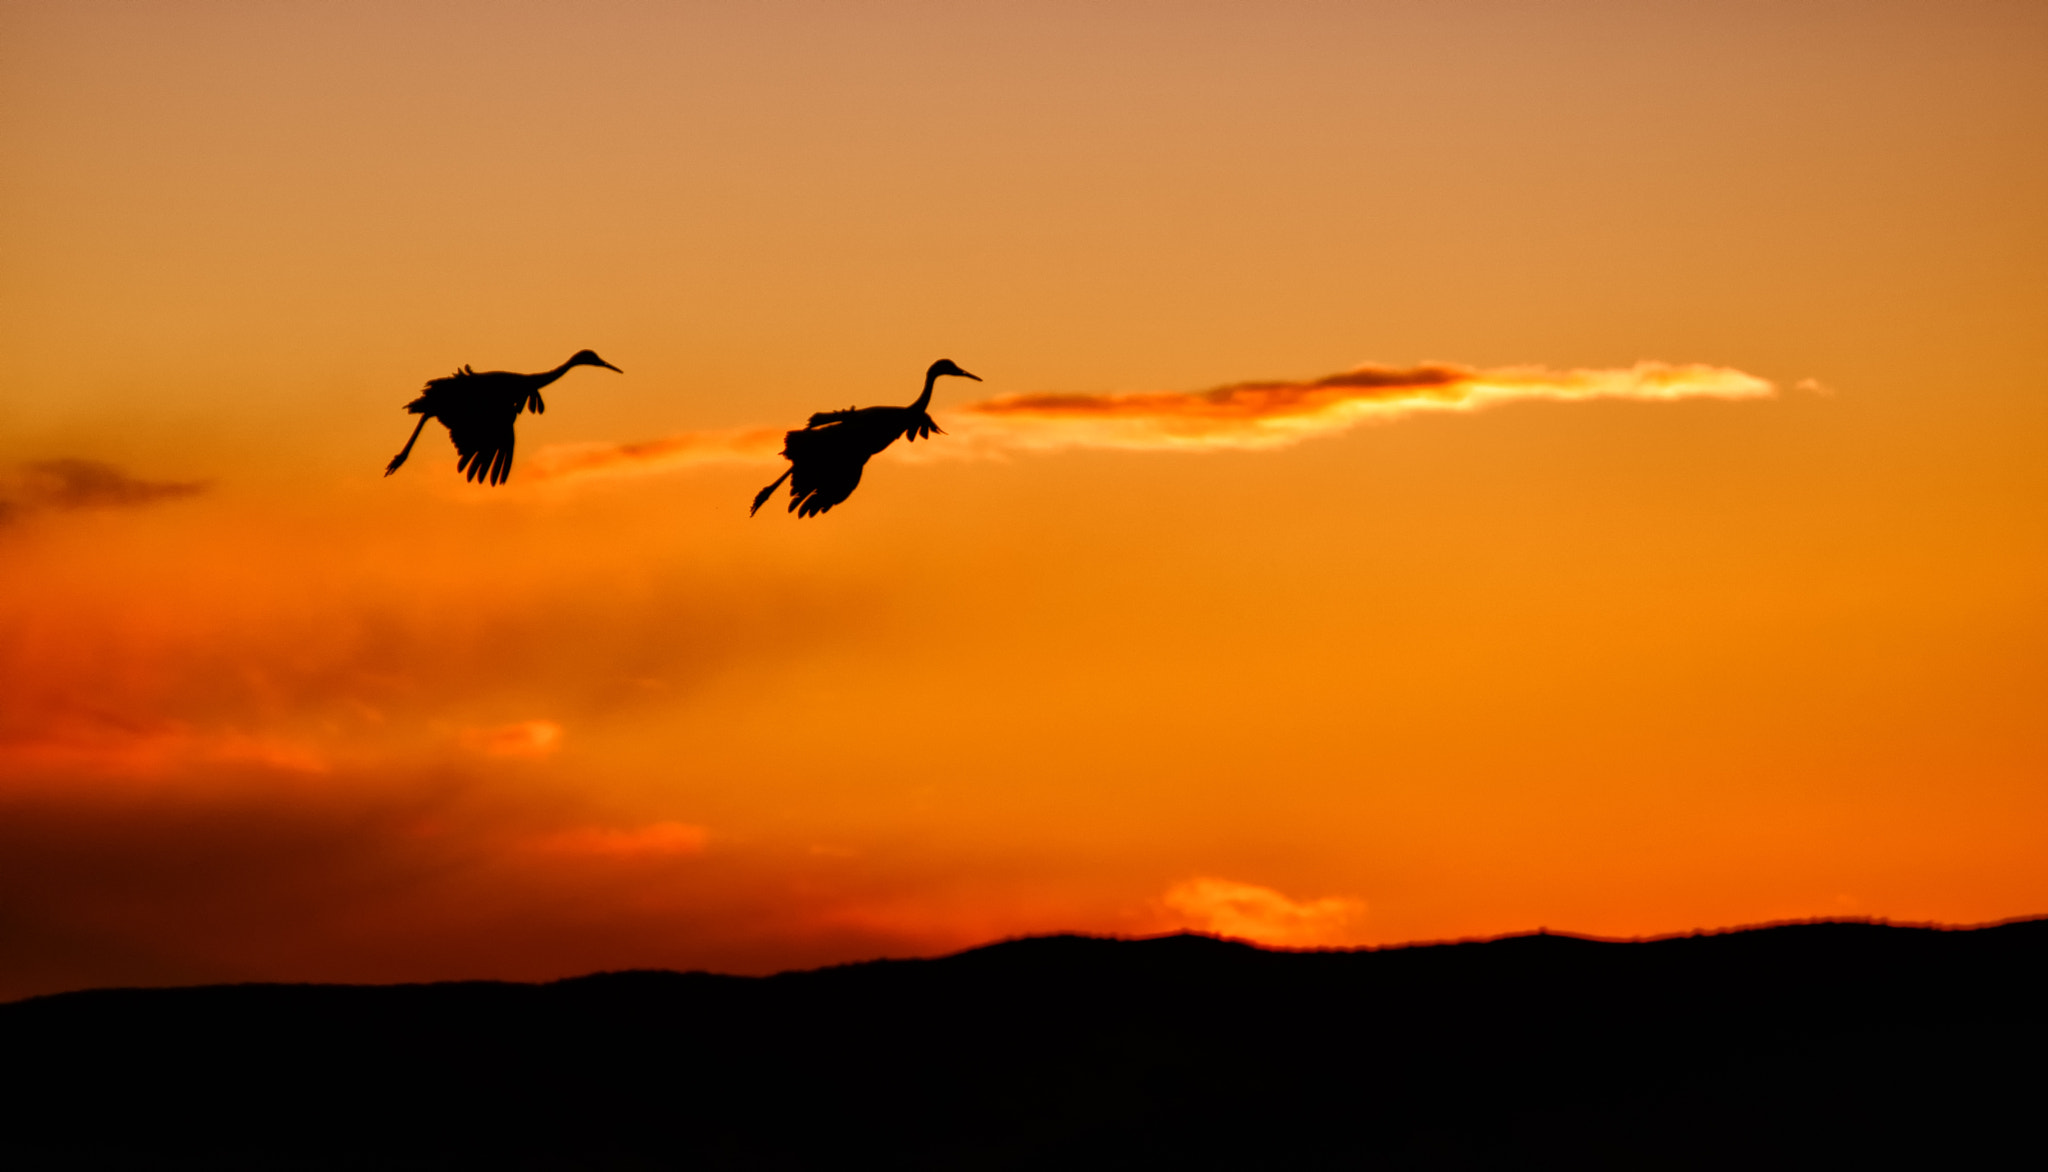 Photograph Flaps Down by Duane Bender on 500px